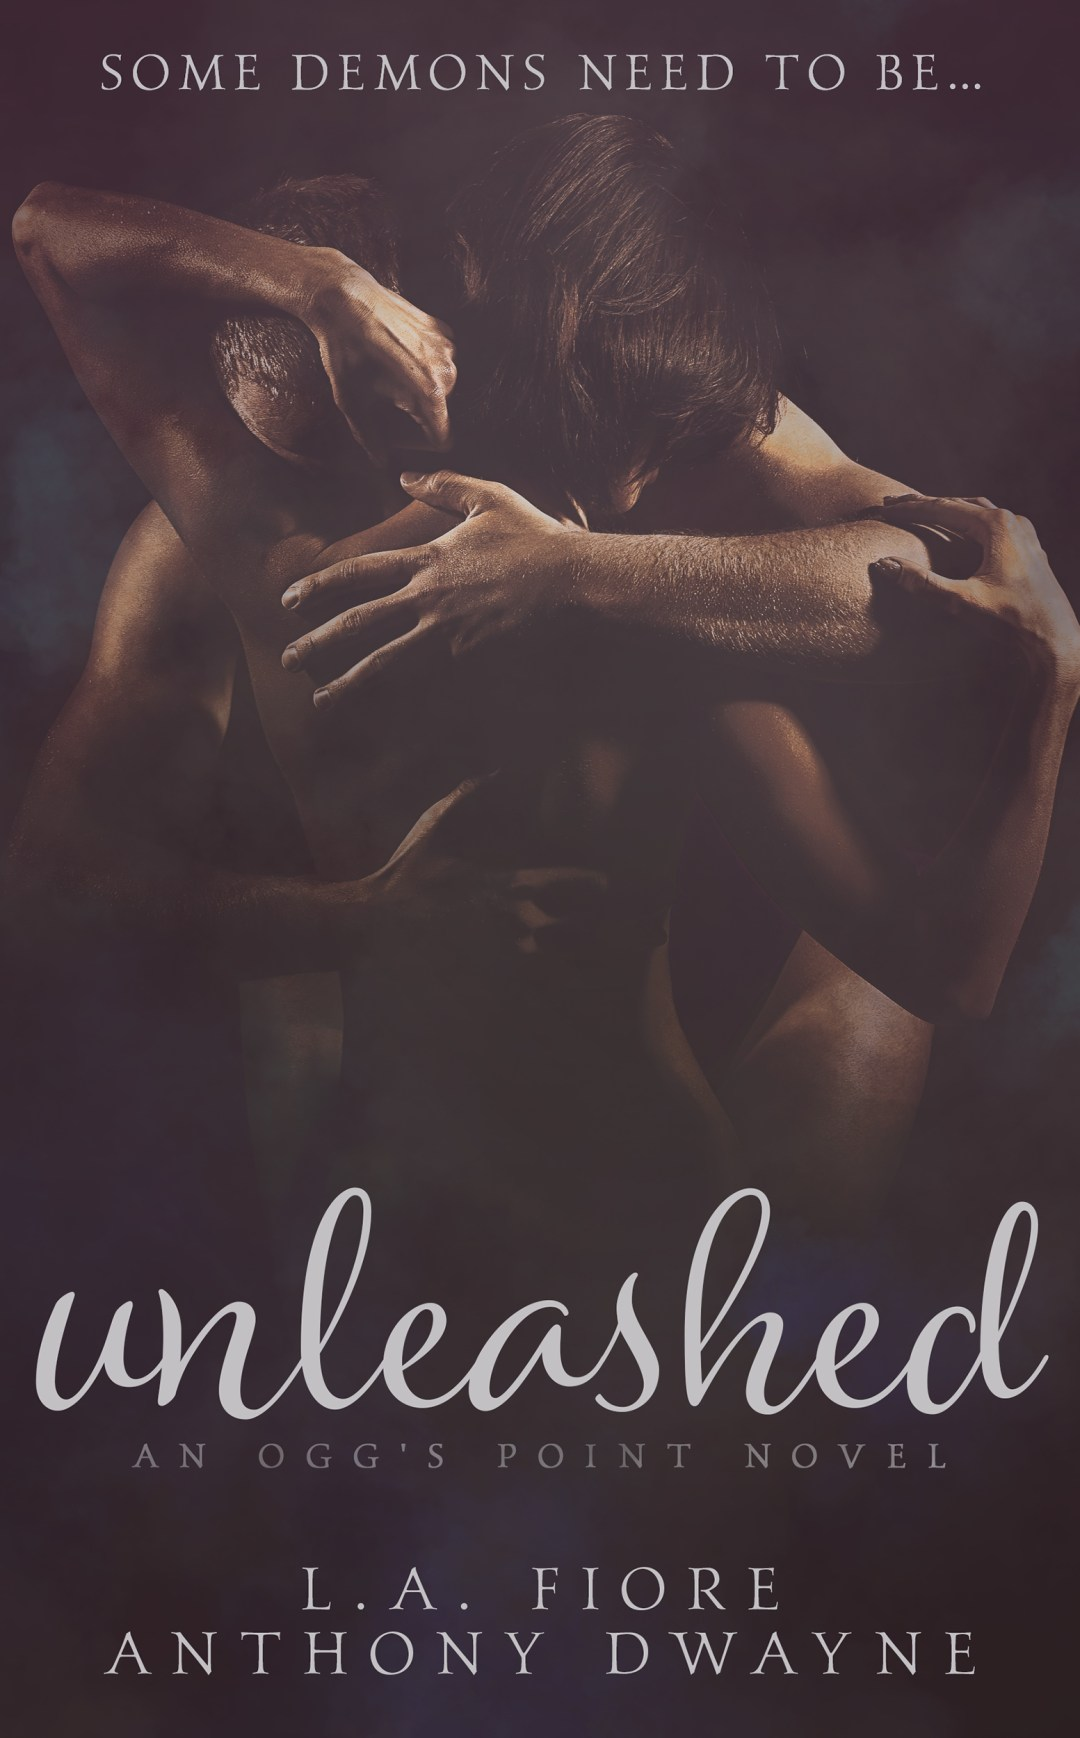 #Review & #NewRelease | UNLEASHED by L.A. Fiore & Anthony Dwayne